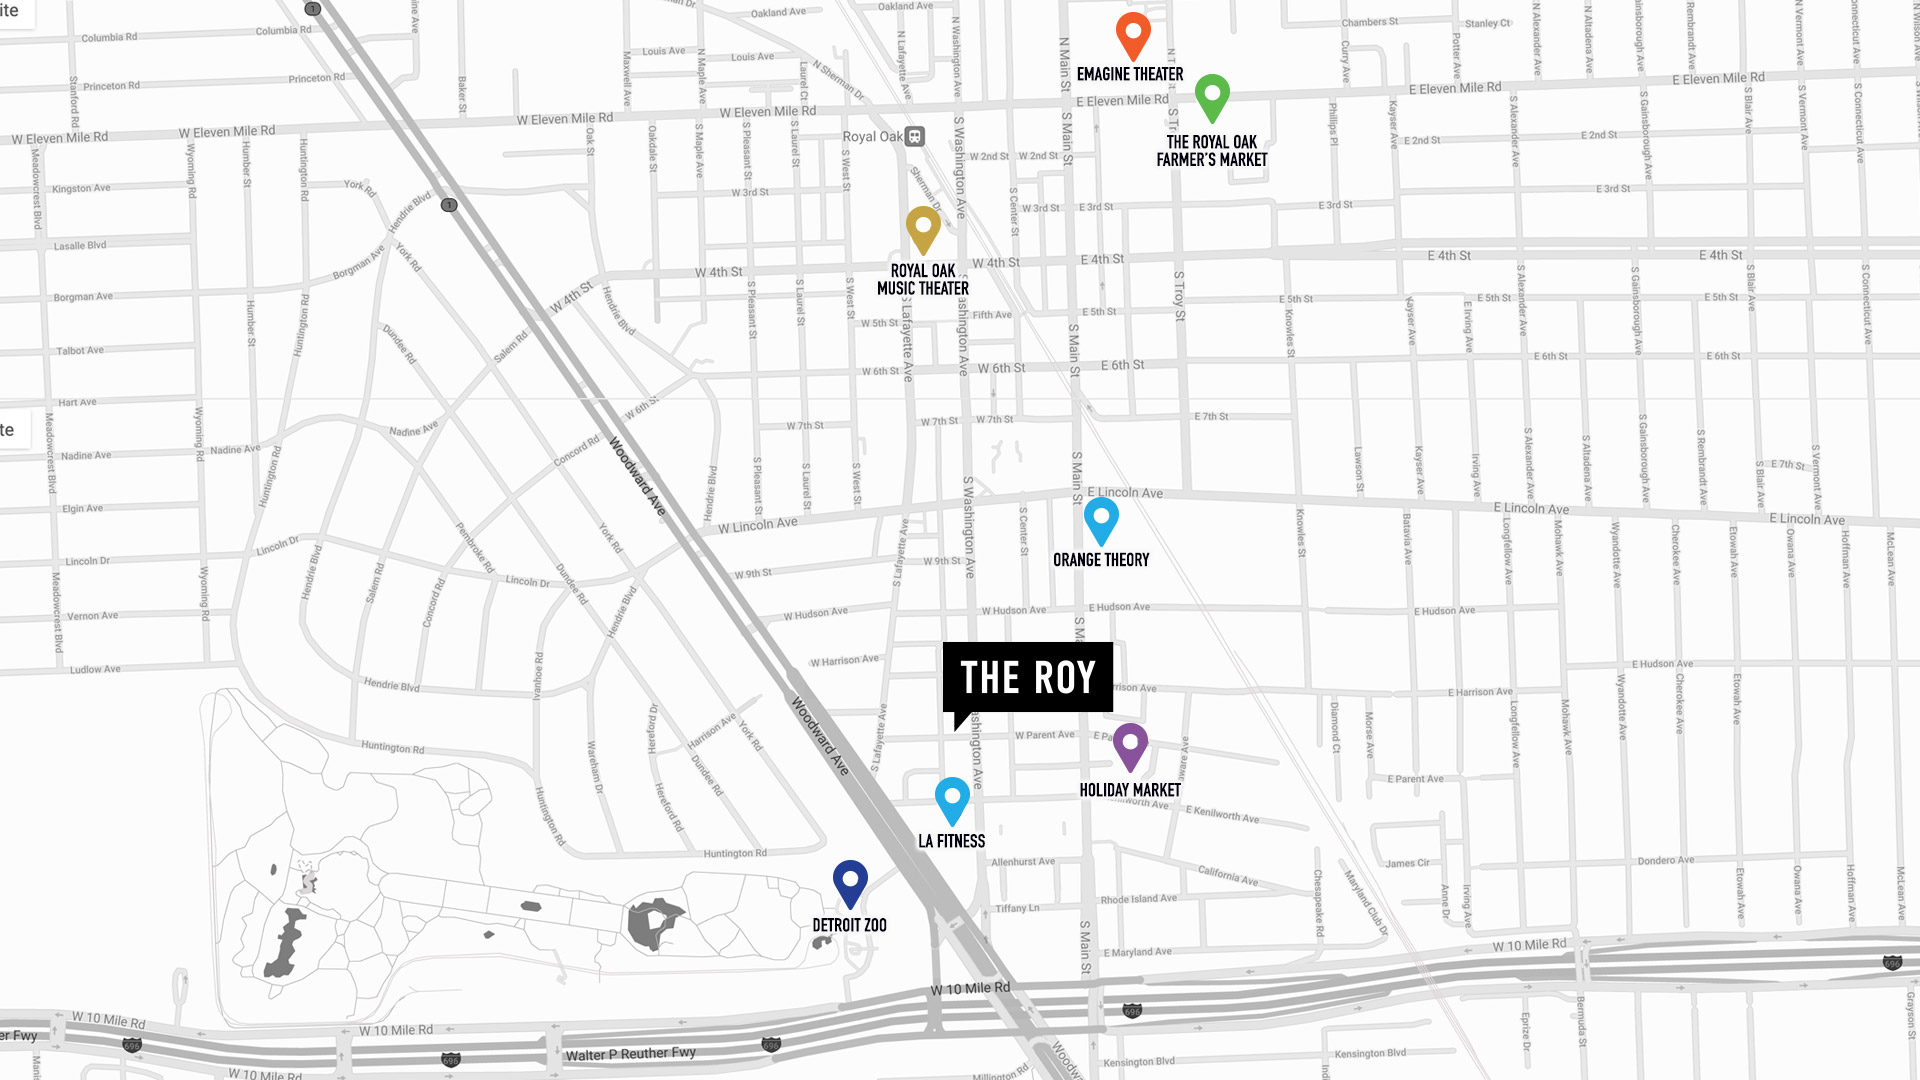 Map of Royal Oak, MI neighborhood showing ROY Apts and local areas of interest